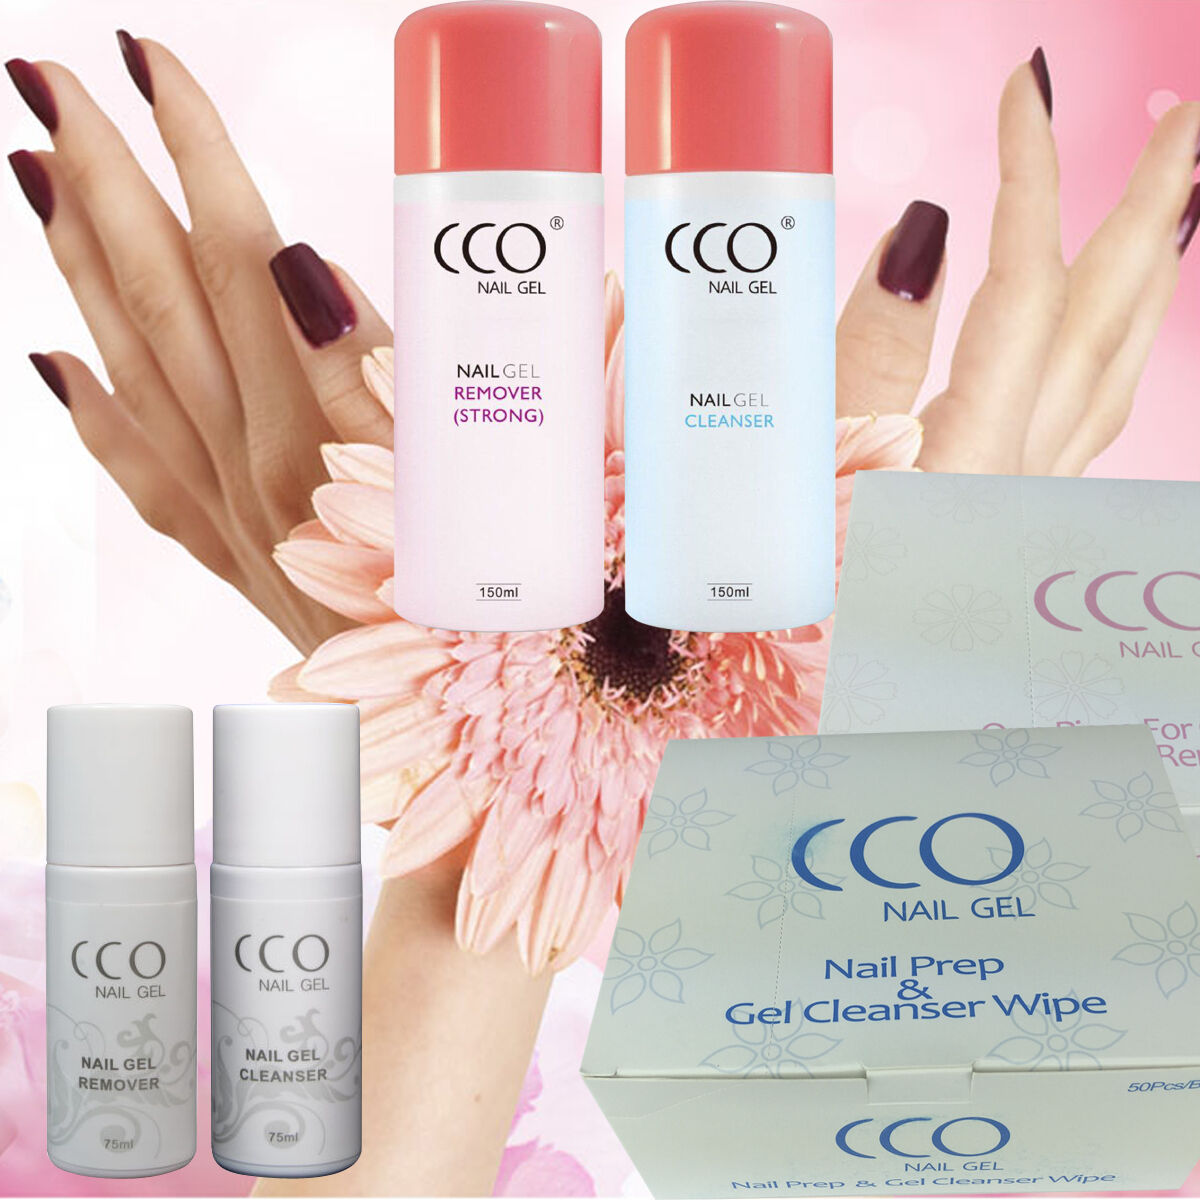 CCO NEW UV LED Nail Gel Polish Cleanser and Remover Soak Off Wipes ...